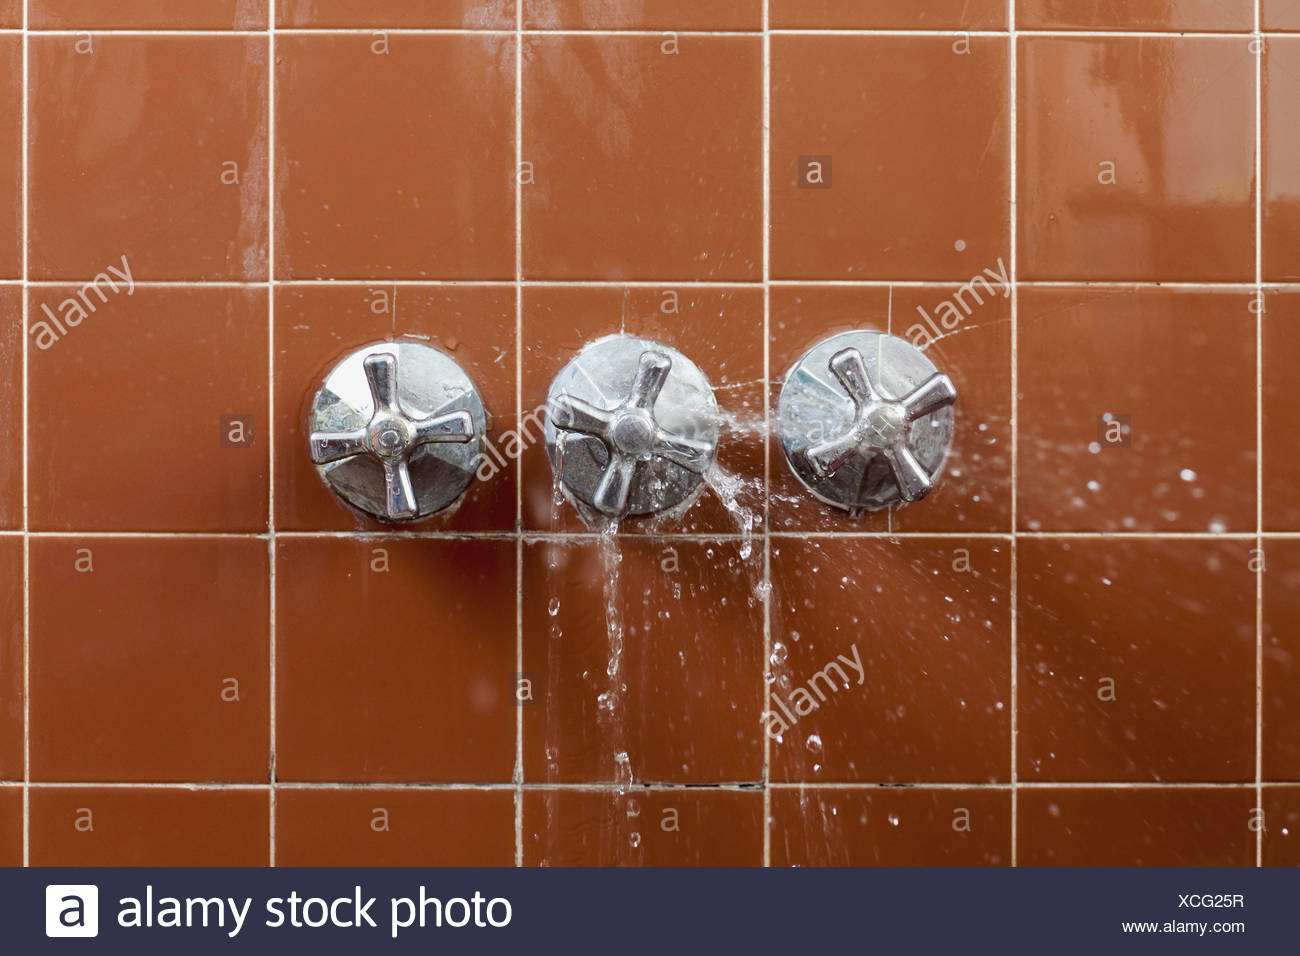 Leaking Shower Stock Photos & Leaking Shower Stock Images - Alamy